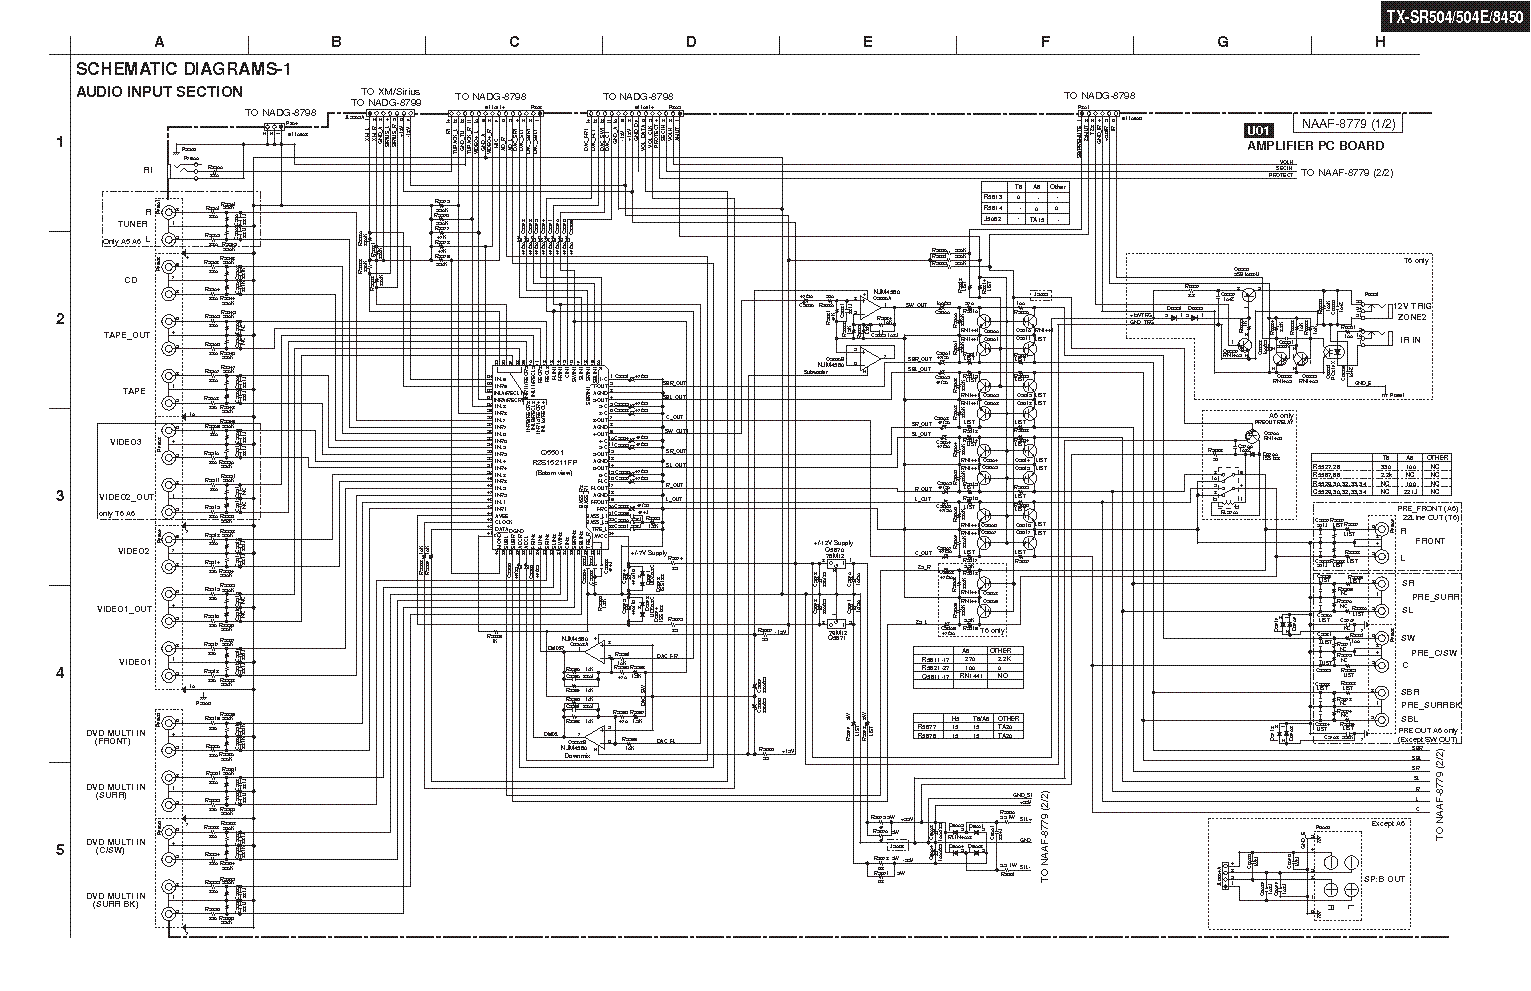 ONKYO TX-SR504 Service Manual download, schematics, eeprom